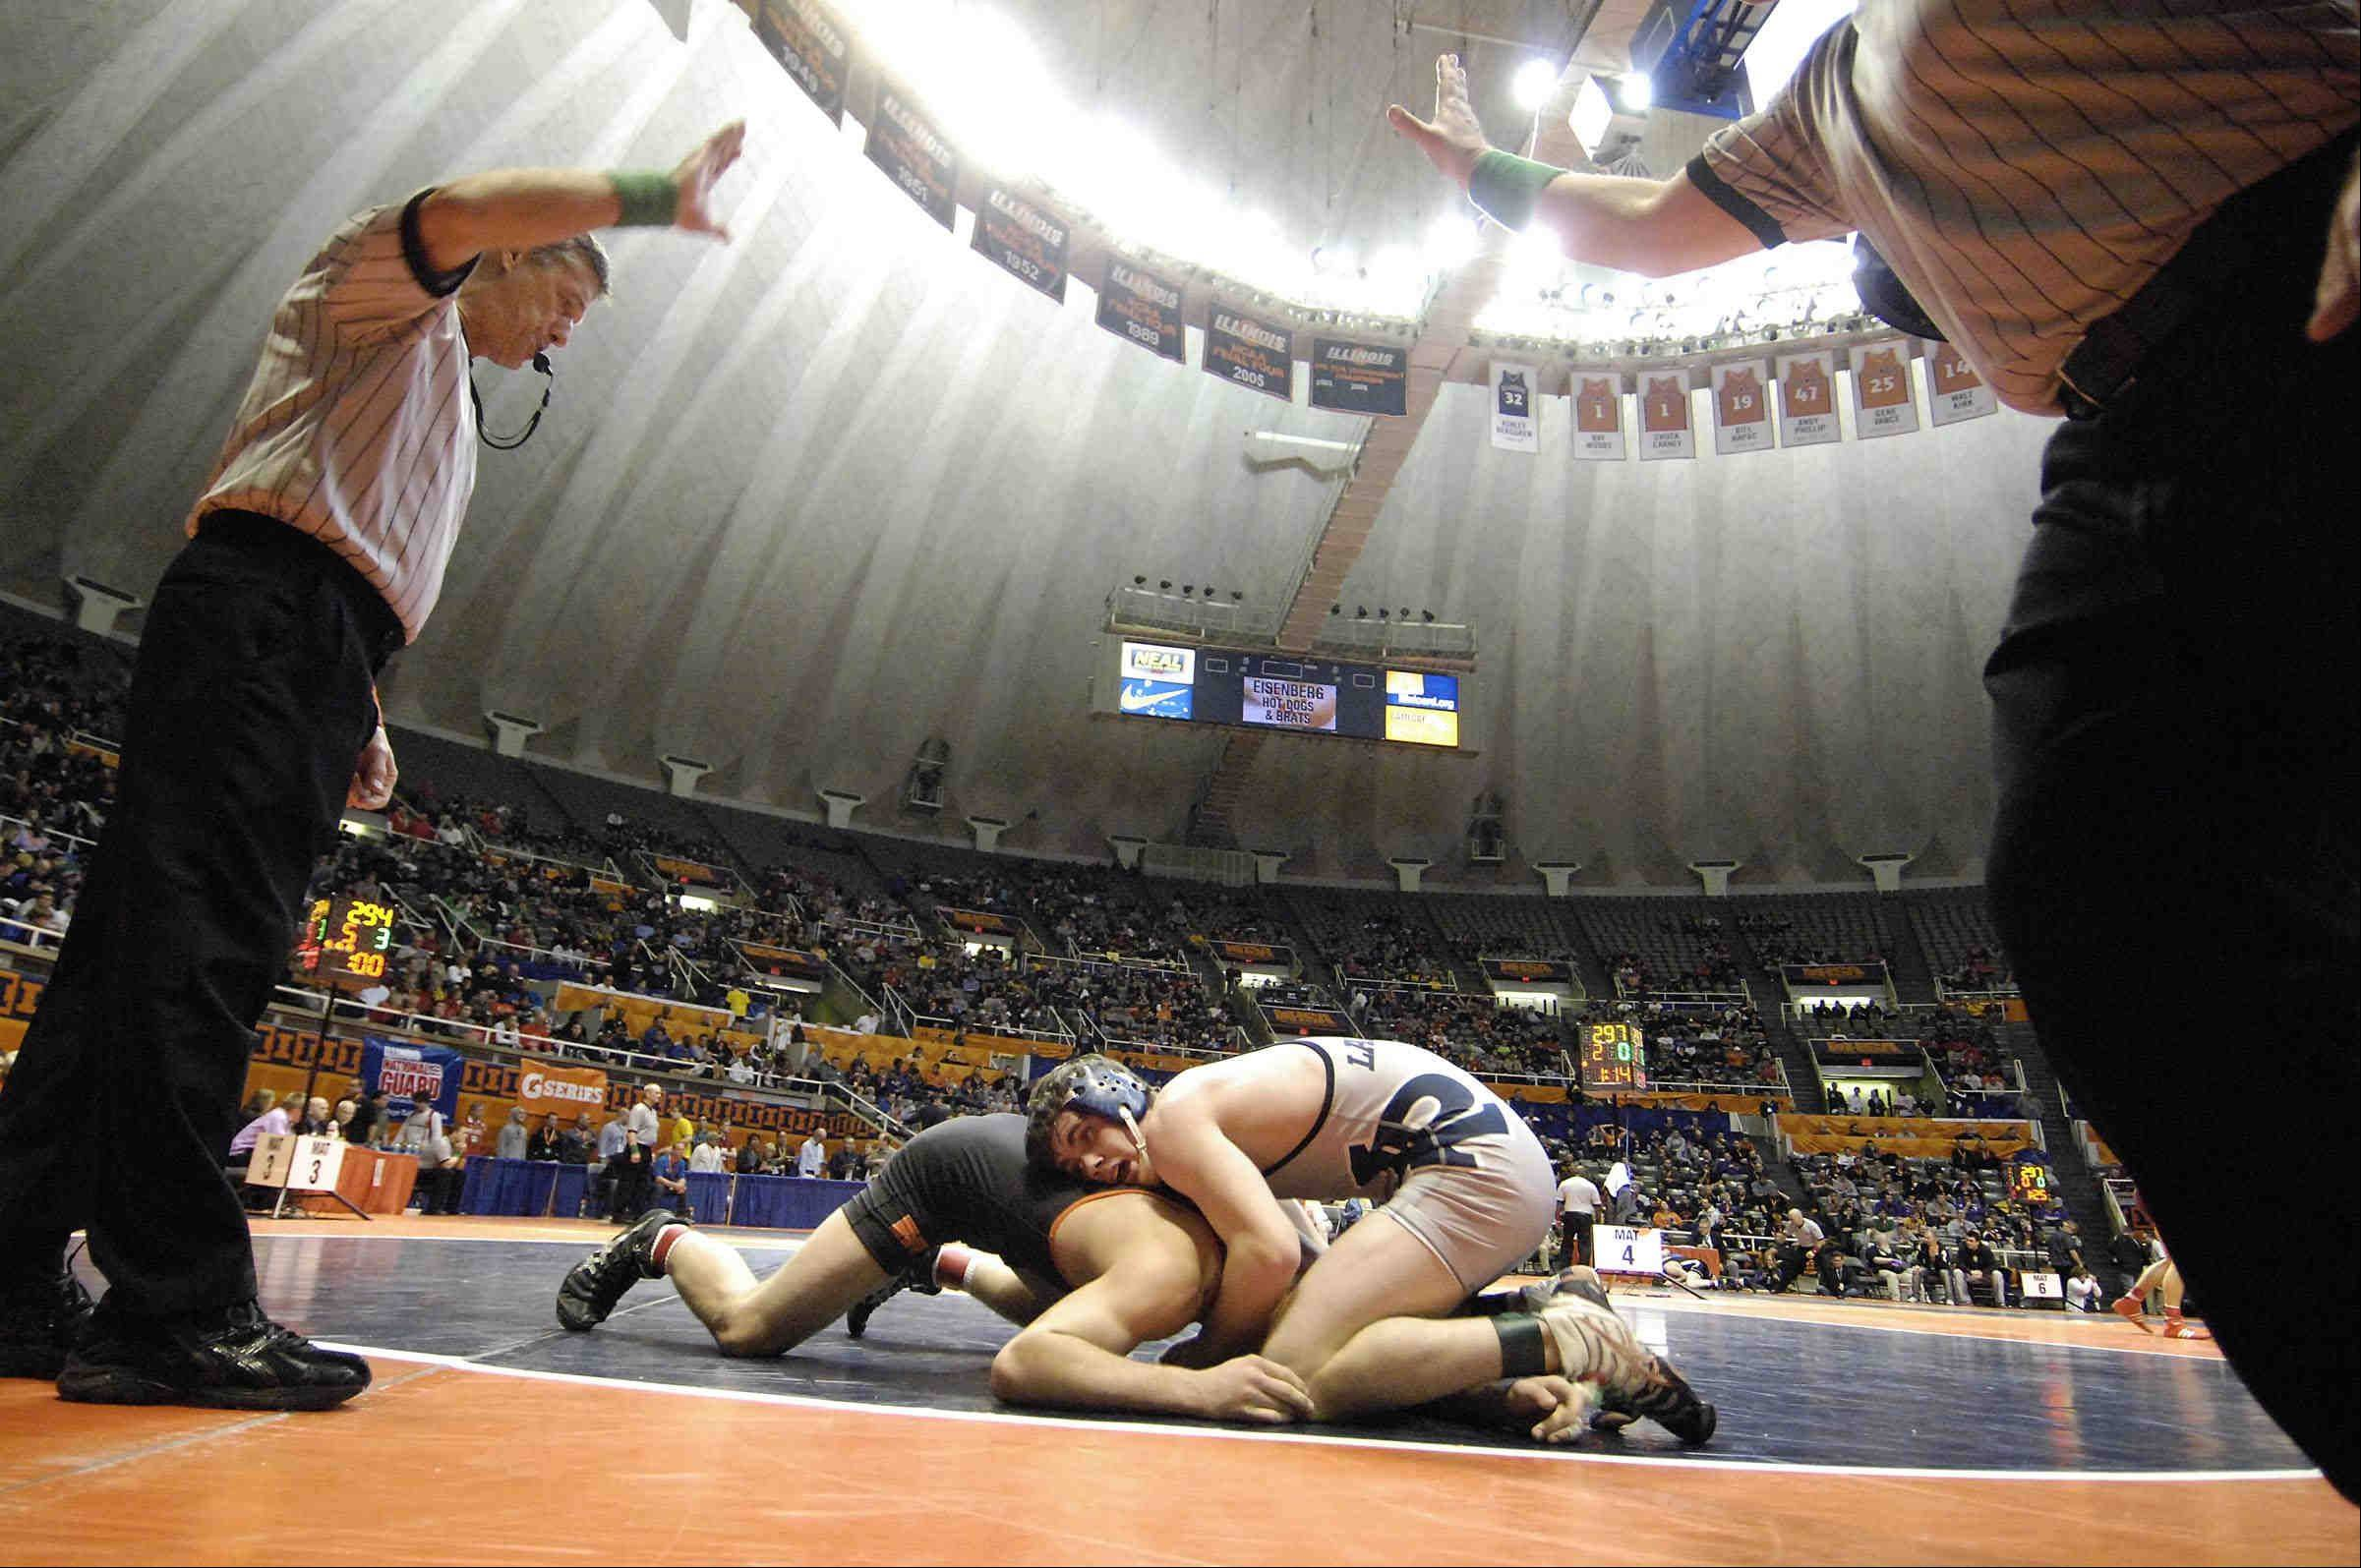 The referee blows the whistle on Lake Park's Austin Schoen as he loses by two points to Wade Lardy of McHenry Friday in the Class 3A 145-pound IHSA semifinal wrestling match at Assembly Hall in Champaign.